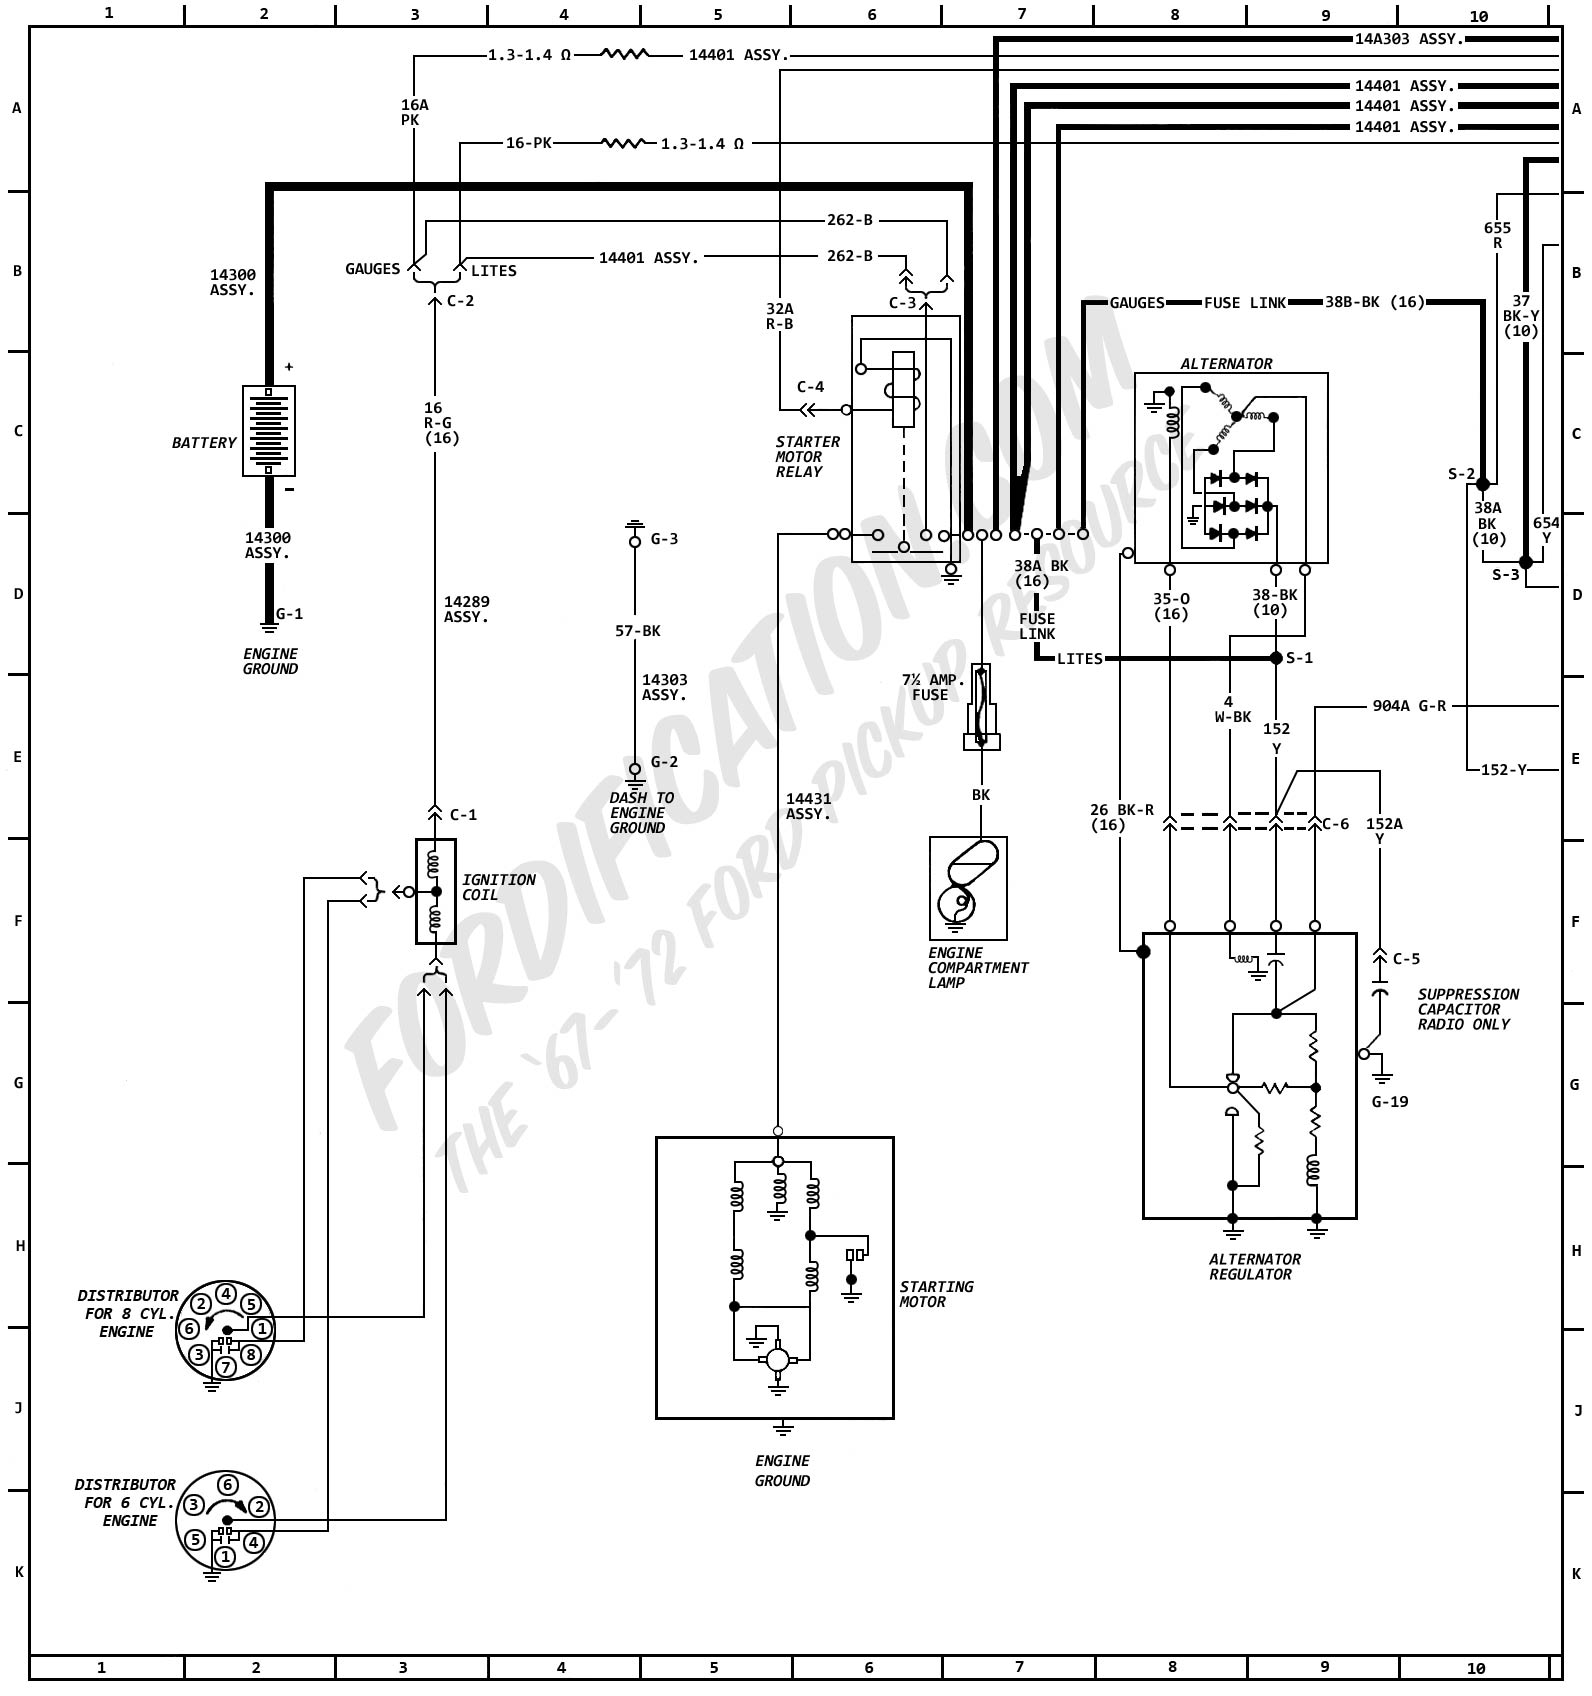 1972MasterWiring_01 1972 ford truck wiring diagrams fordification com F100 Wiring Diagram at reclaimingppi.co